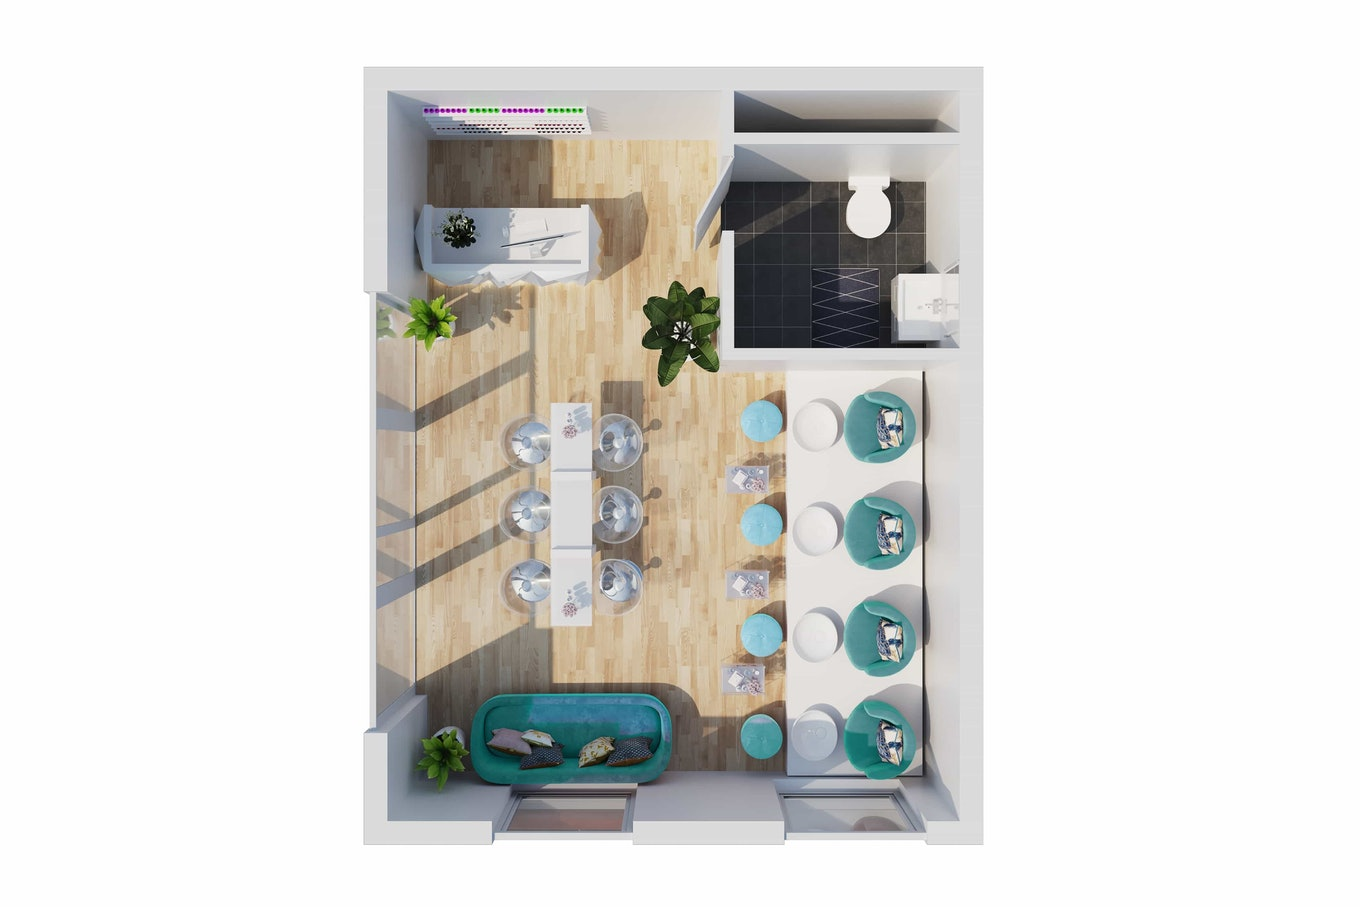 3 D floor plan Salon